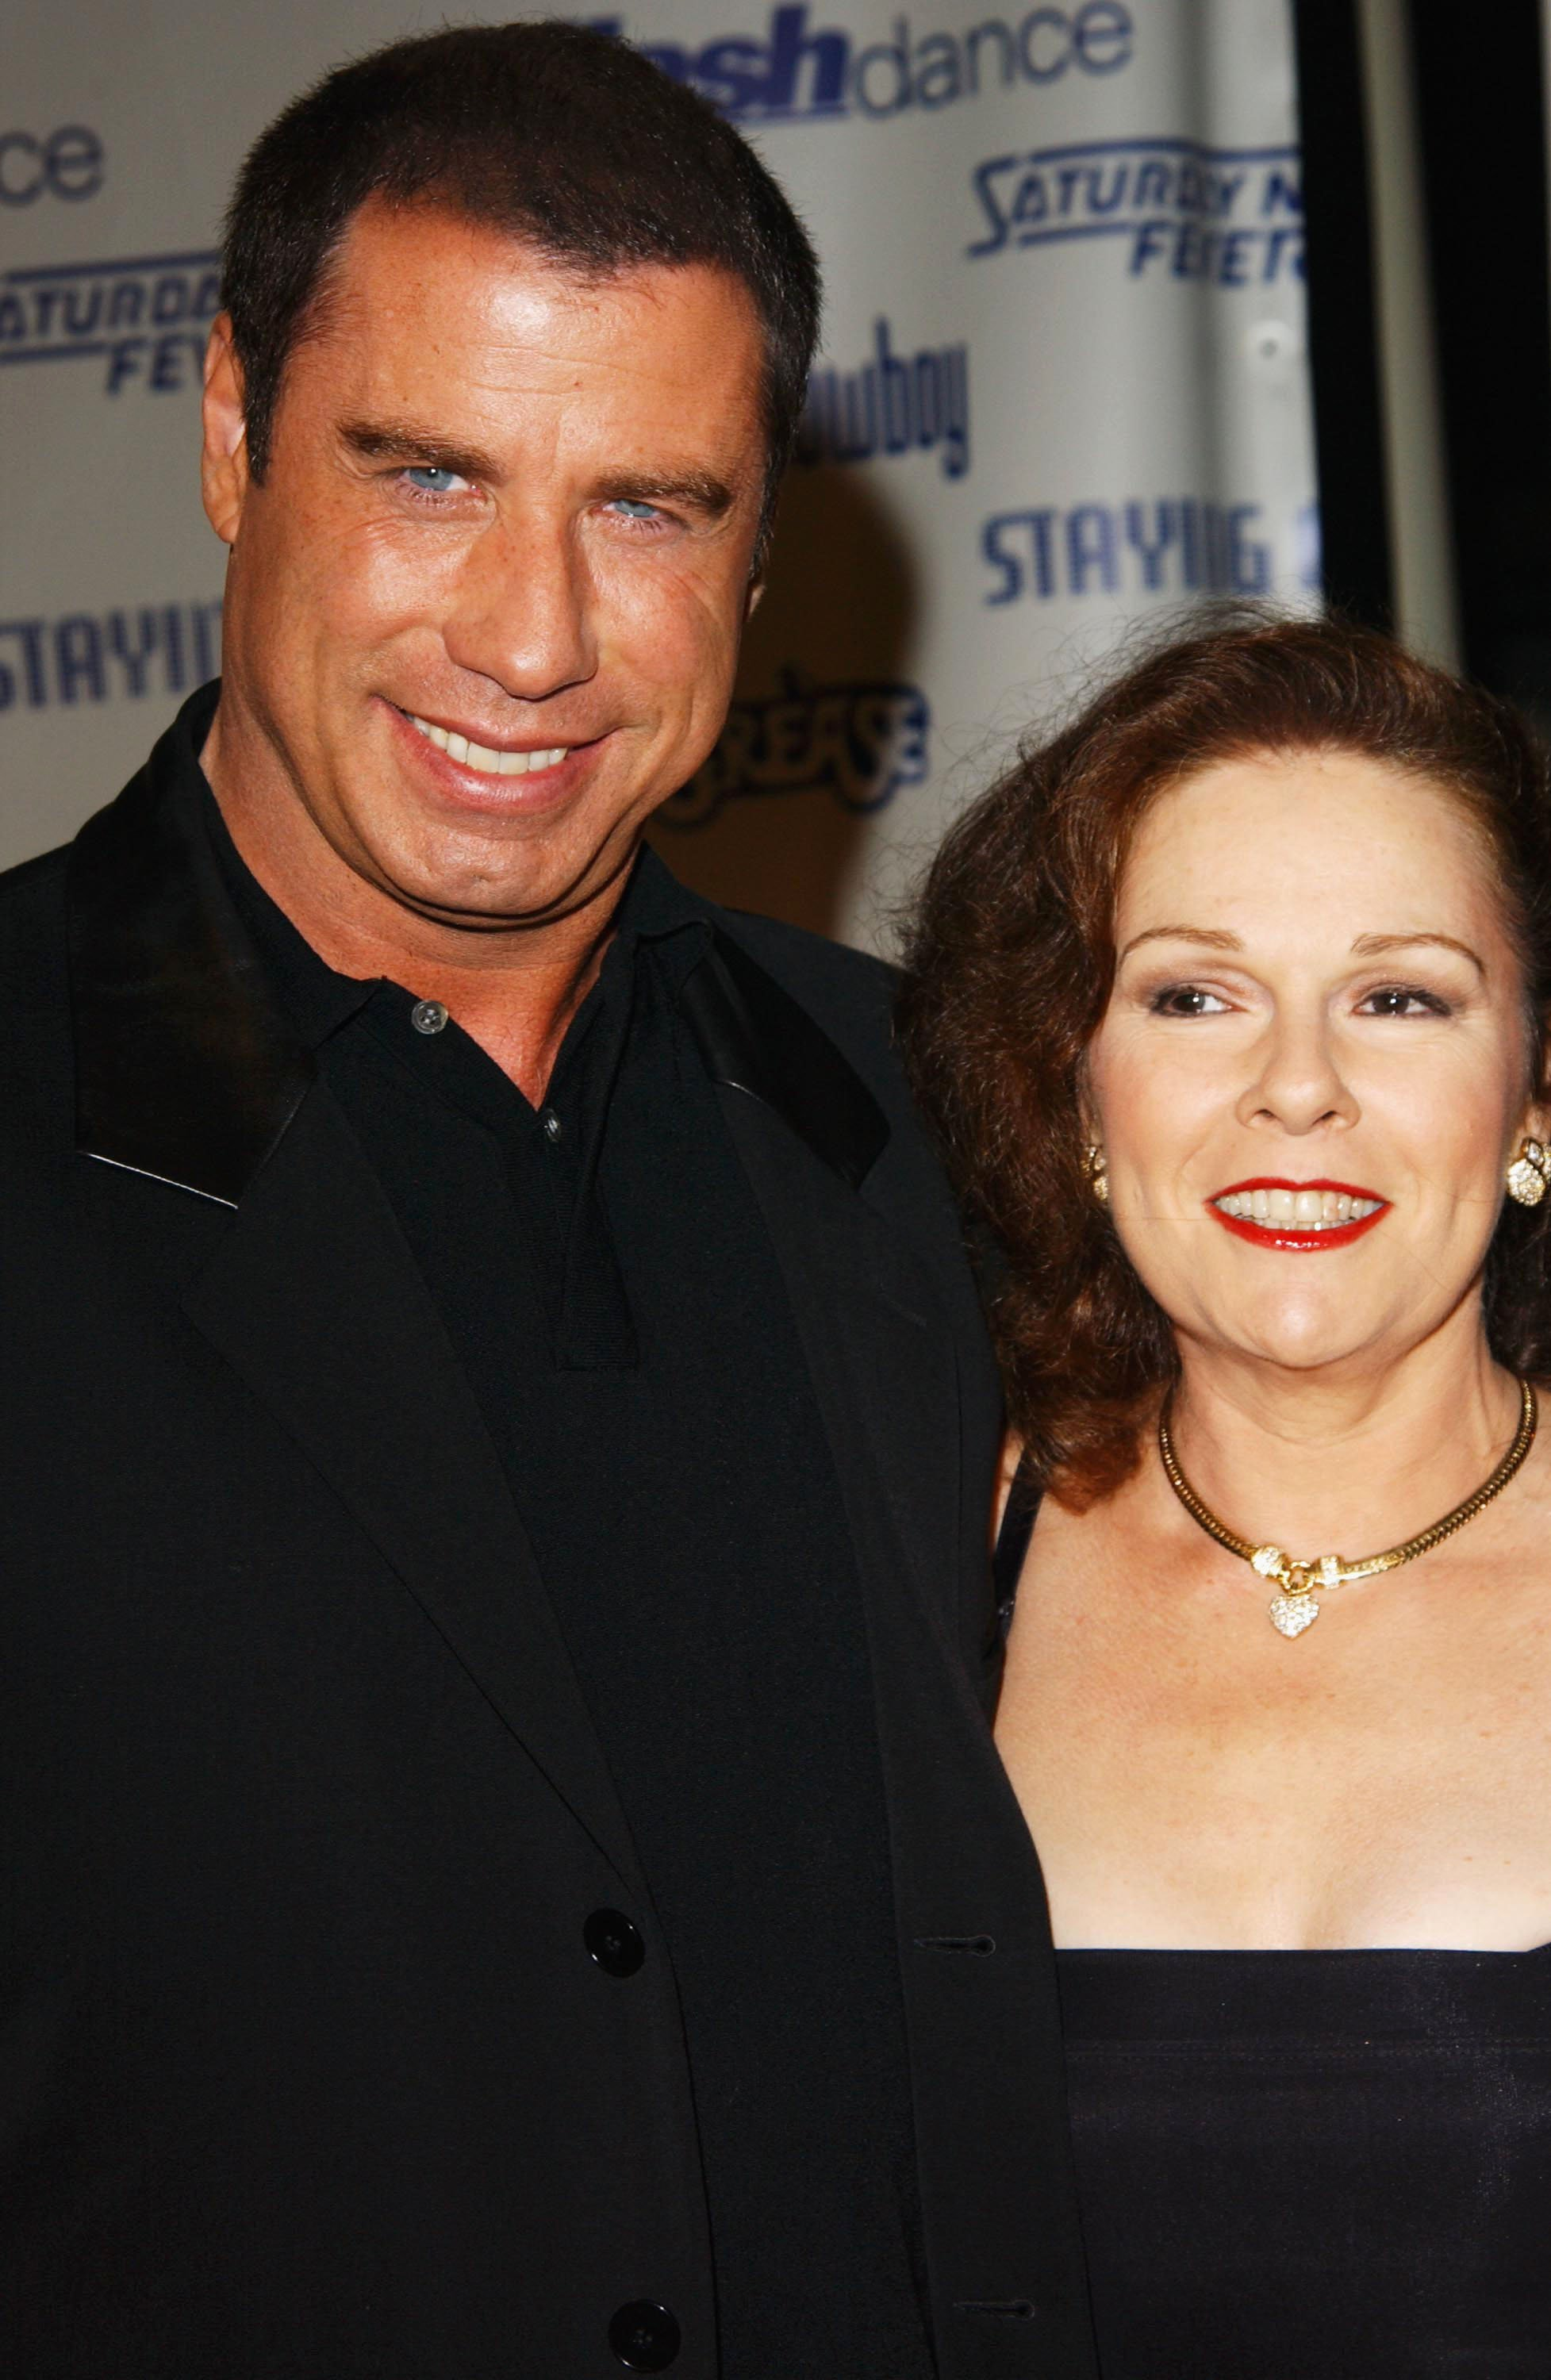 """Actor John Travolta with actress Karen Lynn Gorney from the movie """"Saturday Night Fever"""" attend the Celebration of Paramount Studio's 90th Anniversary. 